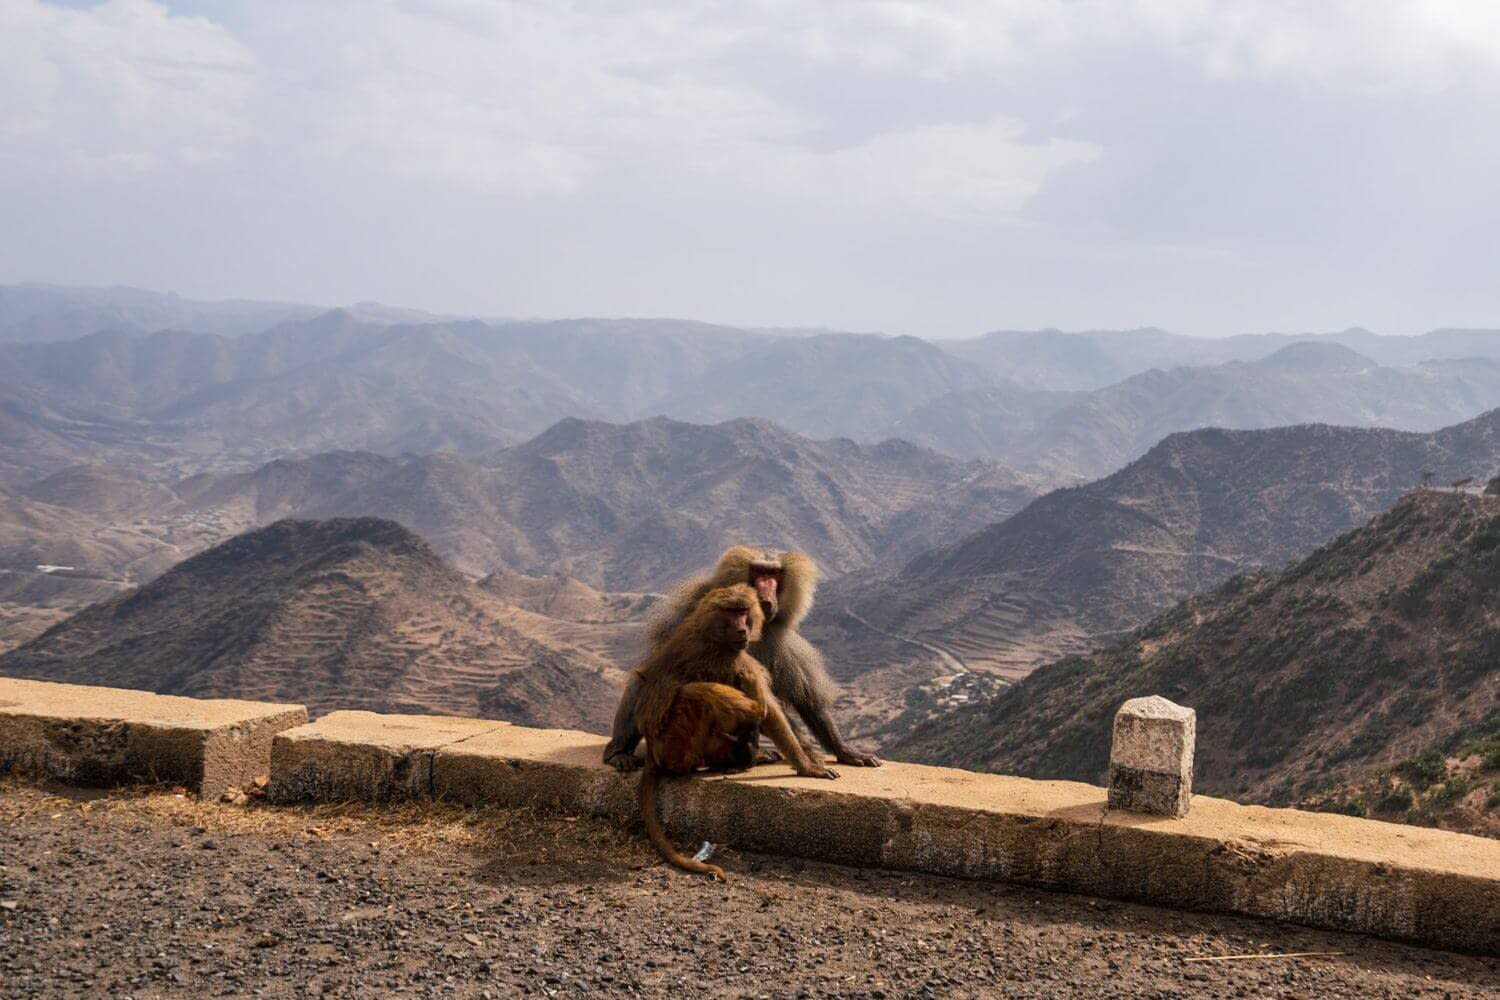 Monkey on the way to Massawa